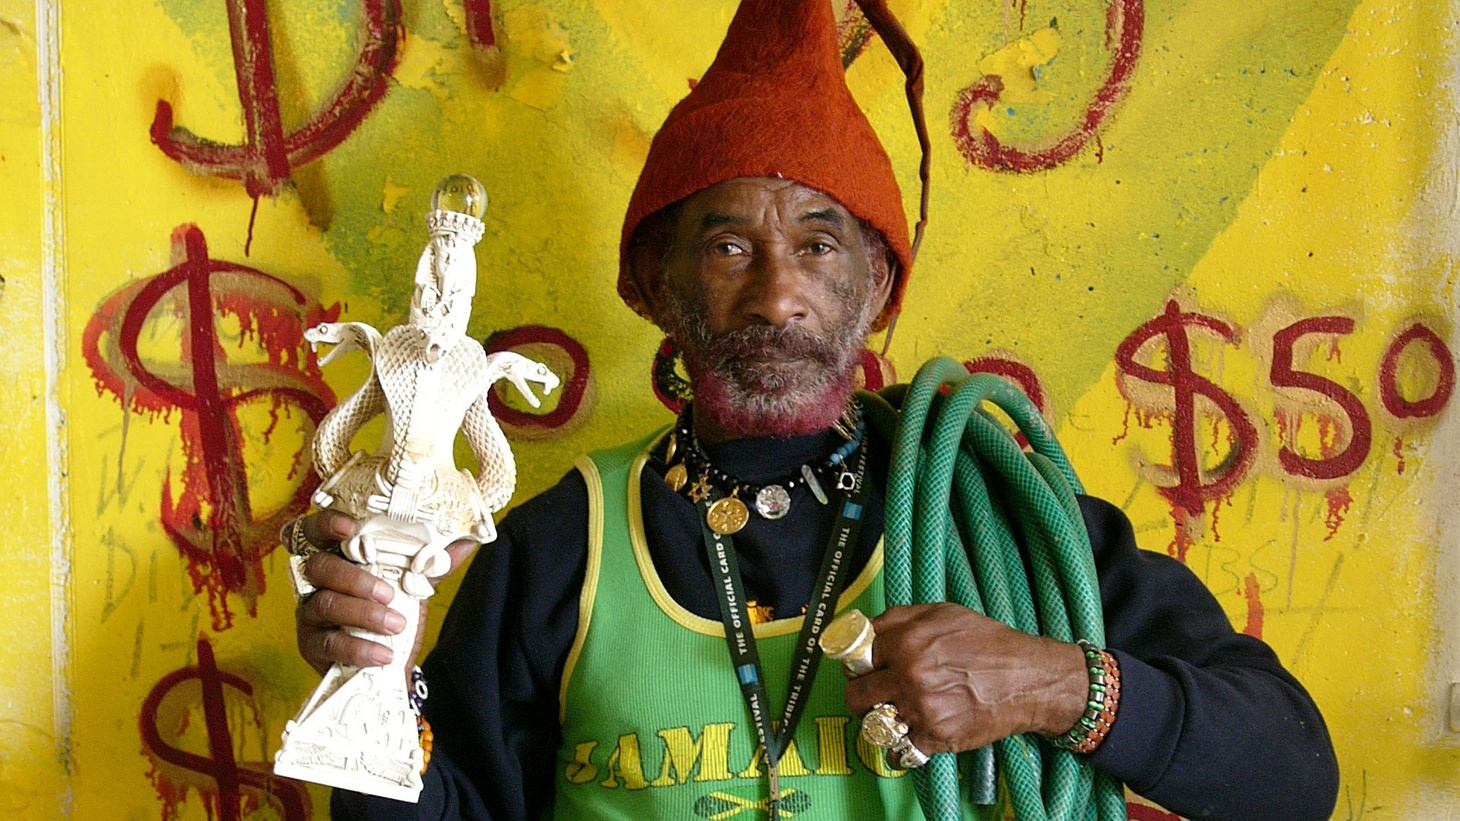 Grammy Award-winning Lee Scratch Perry has inspired generations of artists from Keith Richards to Animal Collective.